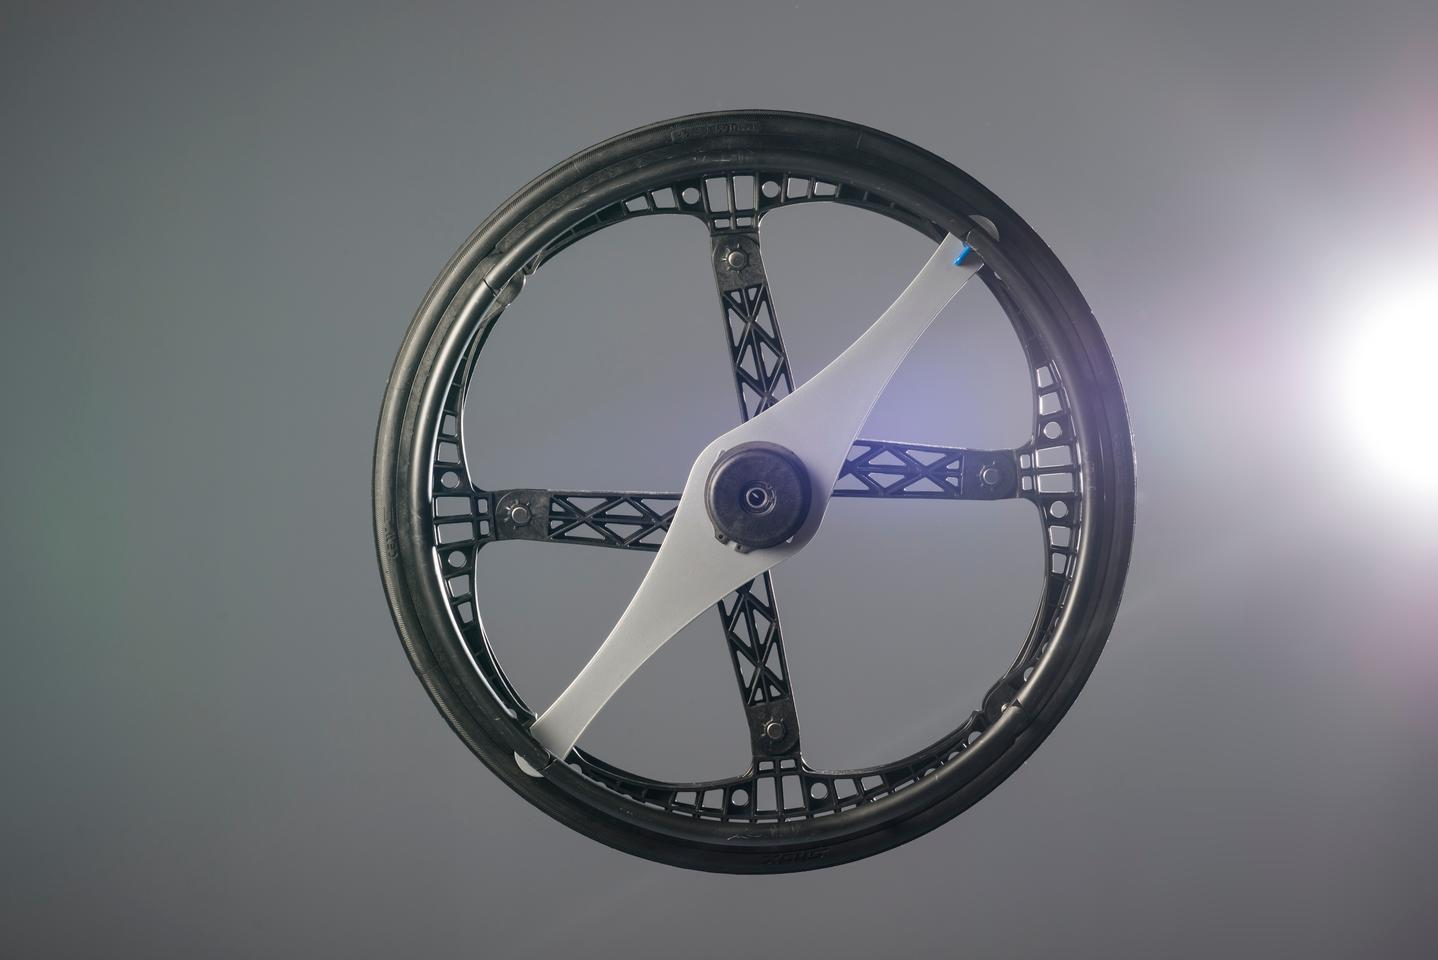 The Morph Wheel was originally designed for use with a bicycle